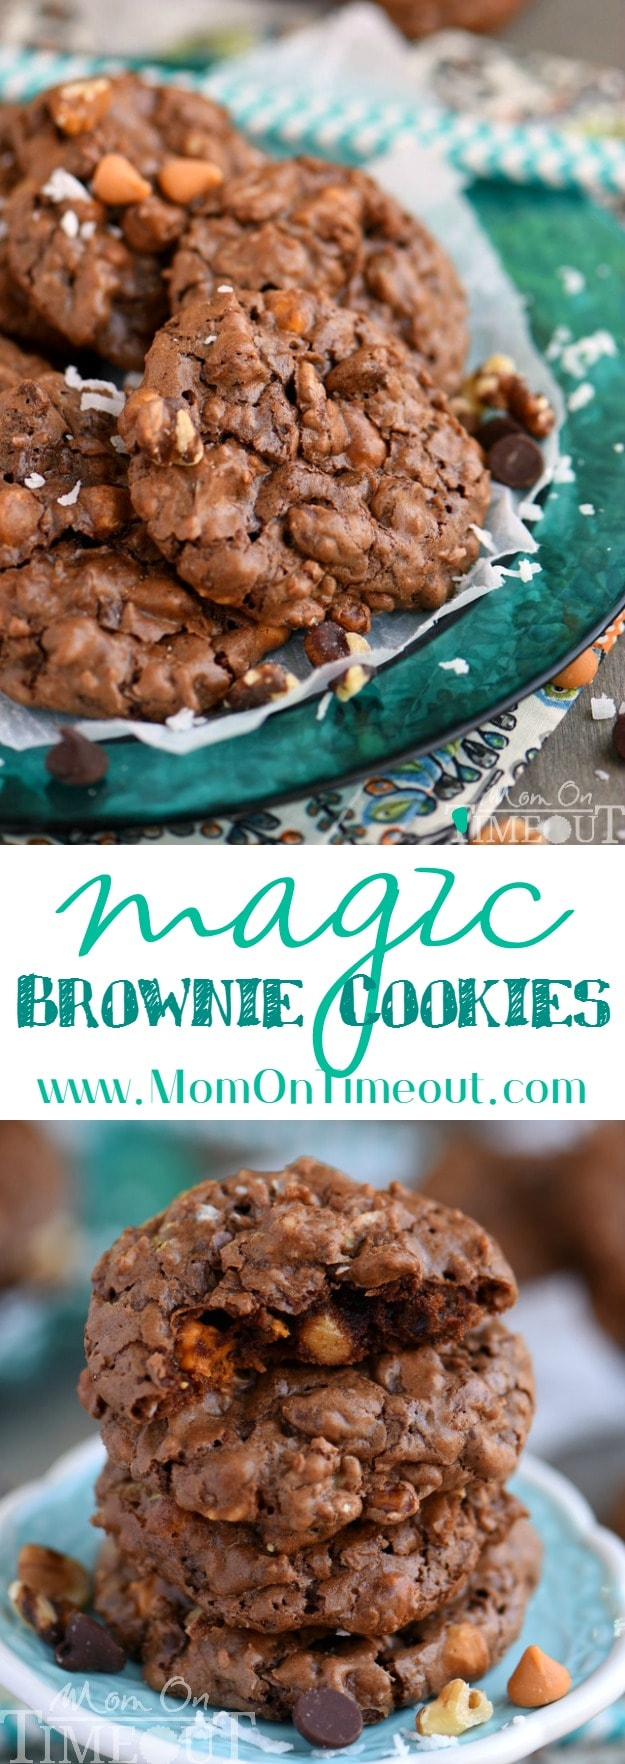 These Magic Brownie Cookies are packed full of flavor - coconut, butterscotch, walnuts, and of course, CHOCOLATE! This easy to make dessert will be a hit at your next party - no one can eat just one! | MomOnTimeout.com